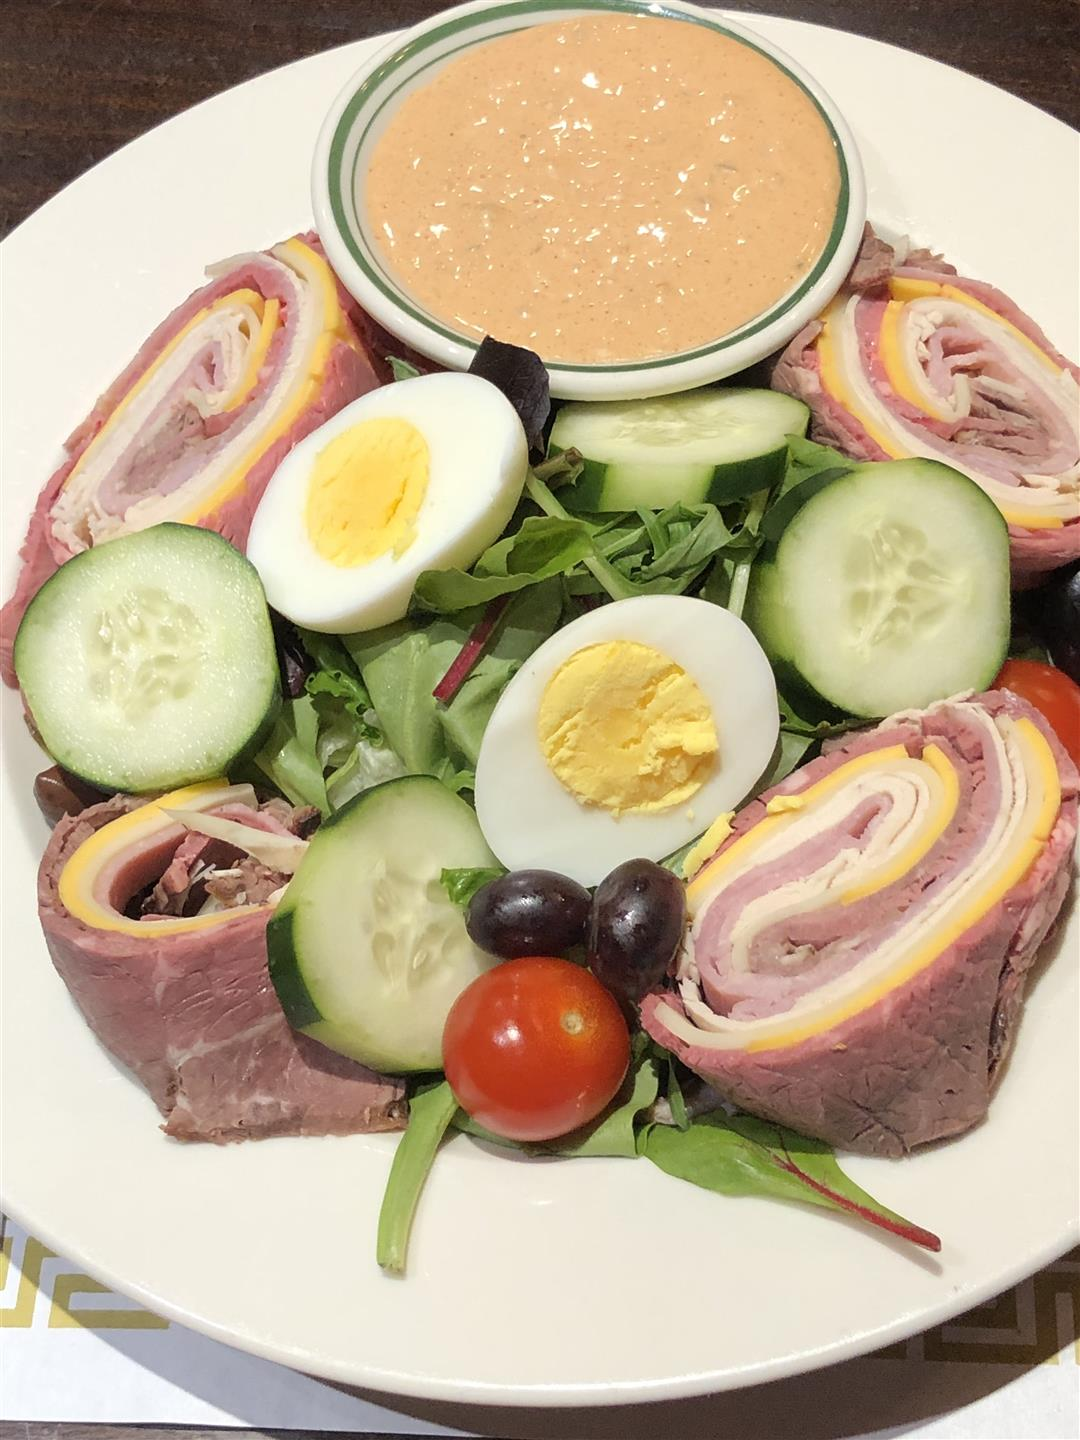 a chef's salad, with cucumbers, cherry tomatoes, and a hard boiled egg, with thousand island dressing on the side. Surrounding it is a ham, cheese and turkey roll that has been split into 4 pieces